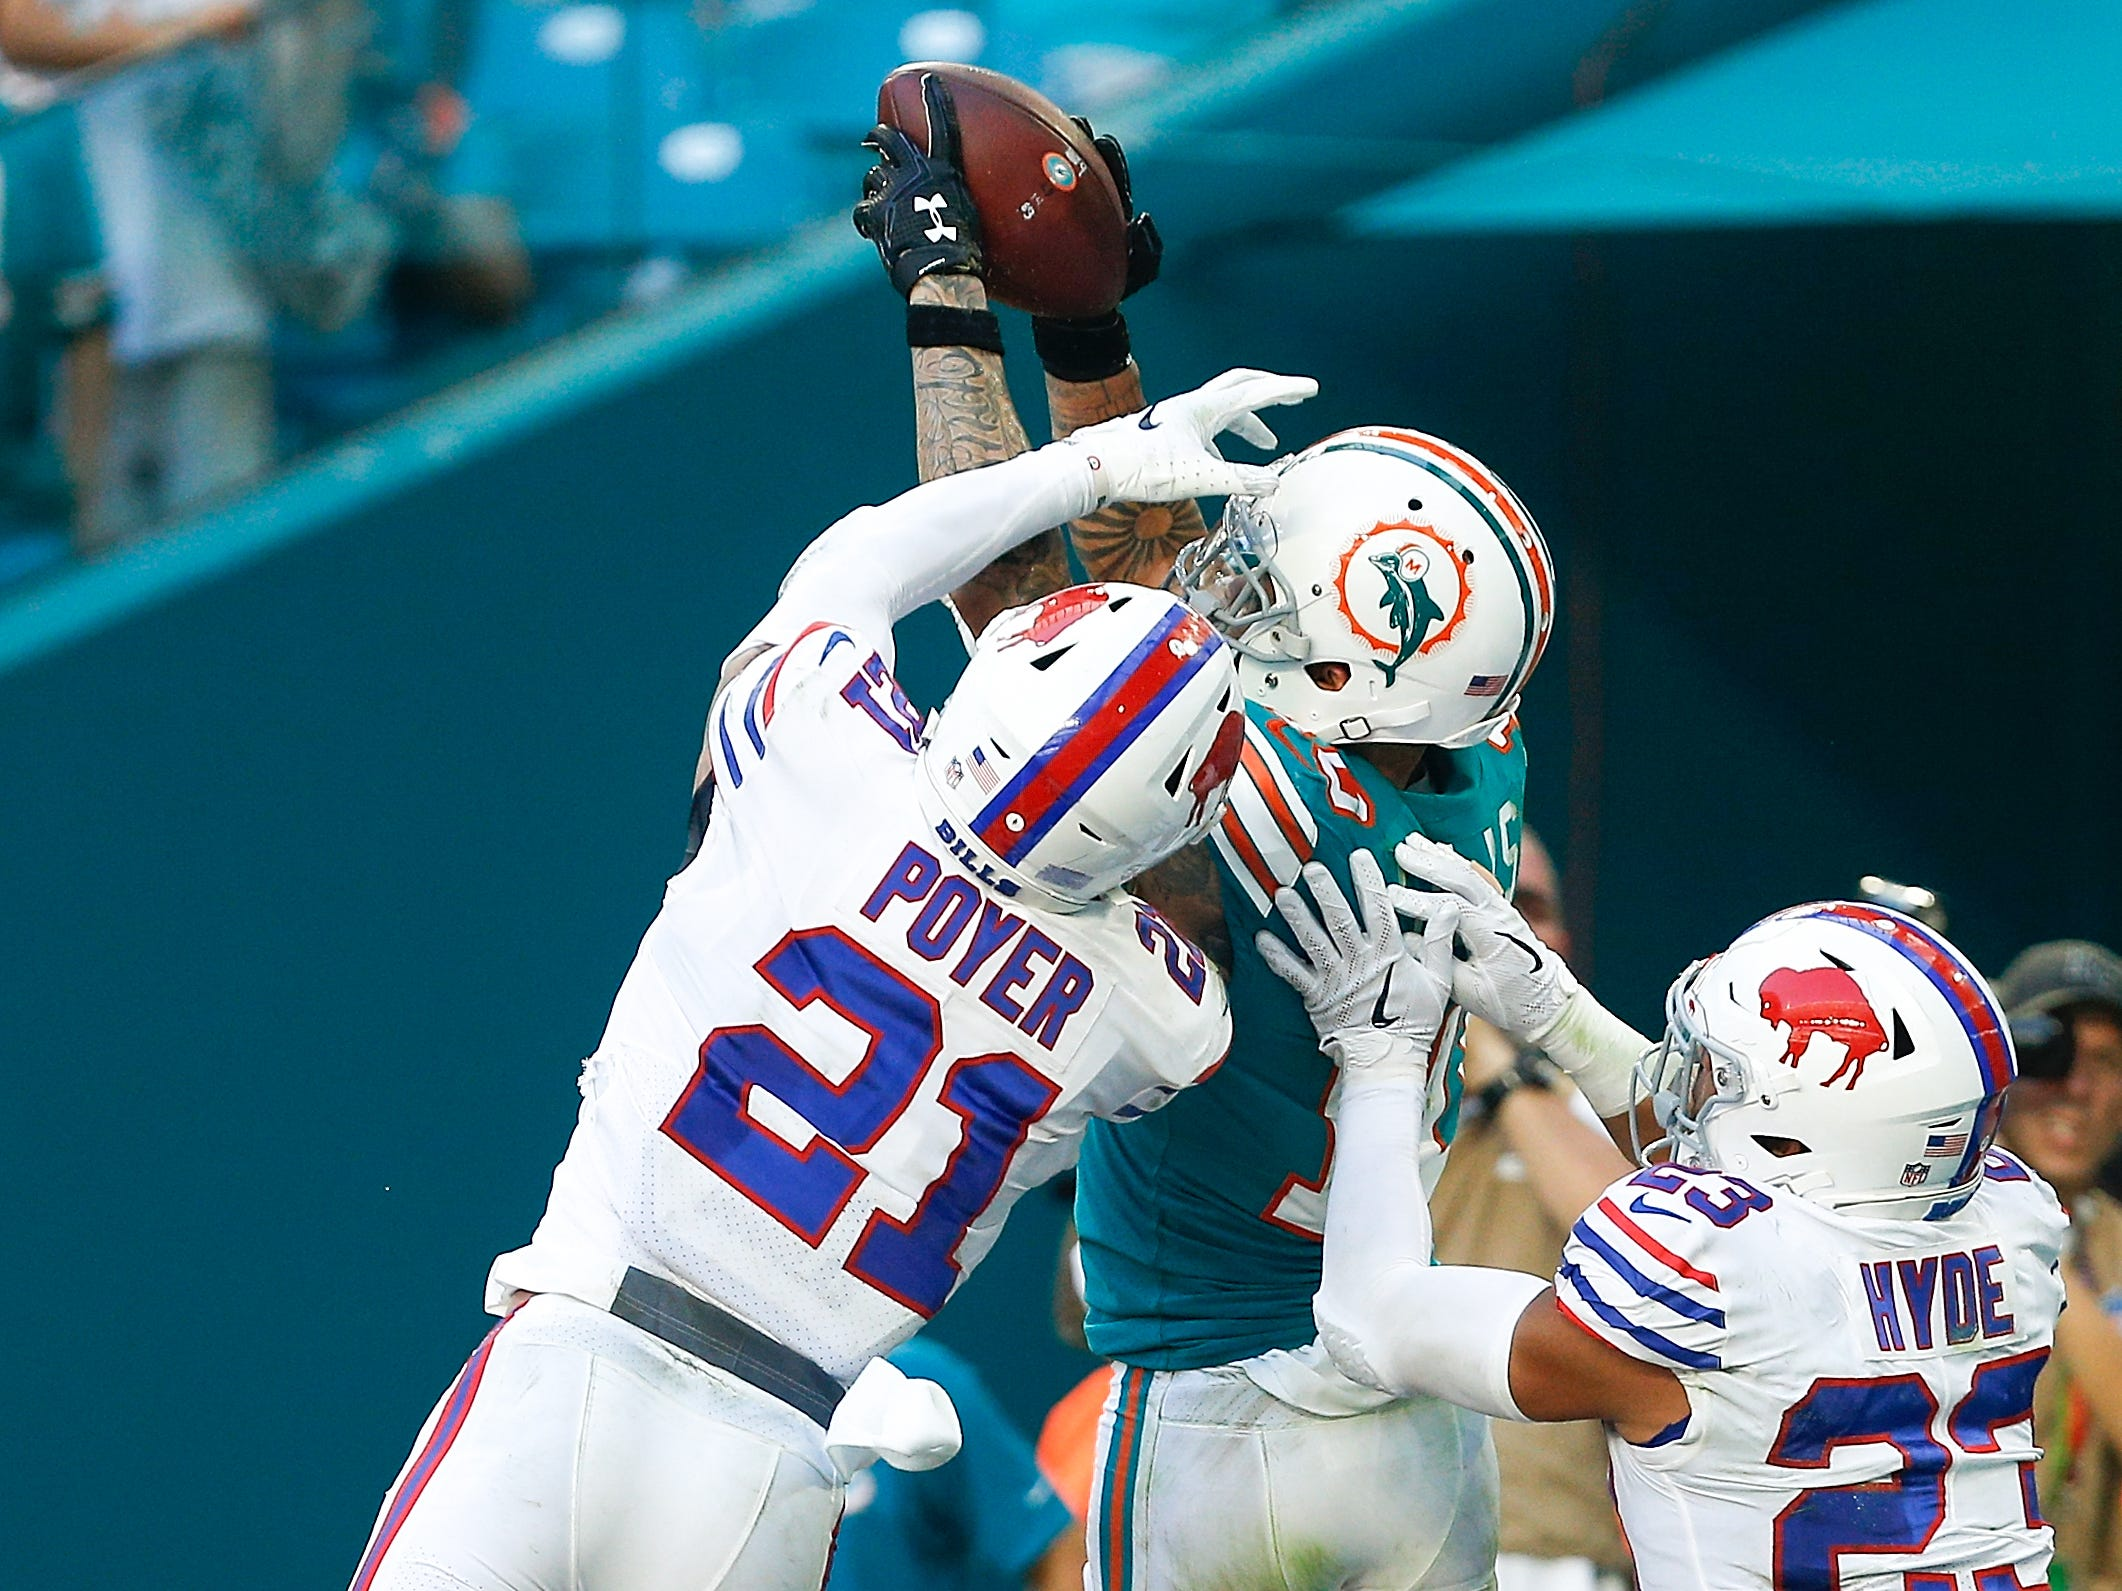 MIAMI, FL - DECEMBER 02:  Kenny Stills #10 of the Miami Dolphins catches a touchdown pass in the endzone against Jordan Poyer #21 and Micah Hyde #23 of the Buffalo Bills during the second half at Hard Rock Stadium on December 2, 2018 in Miami, Florida.  (Photo by Michael Reaves/Getty Images)